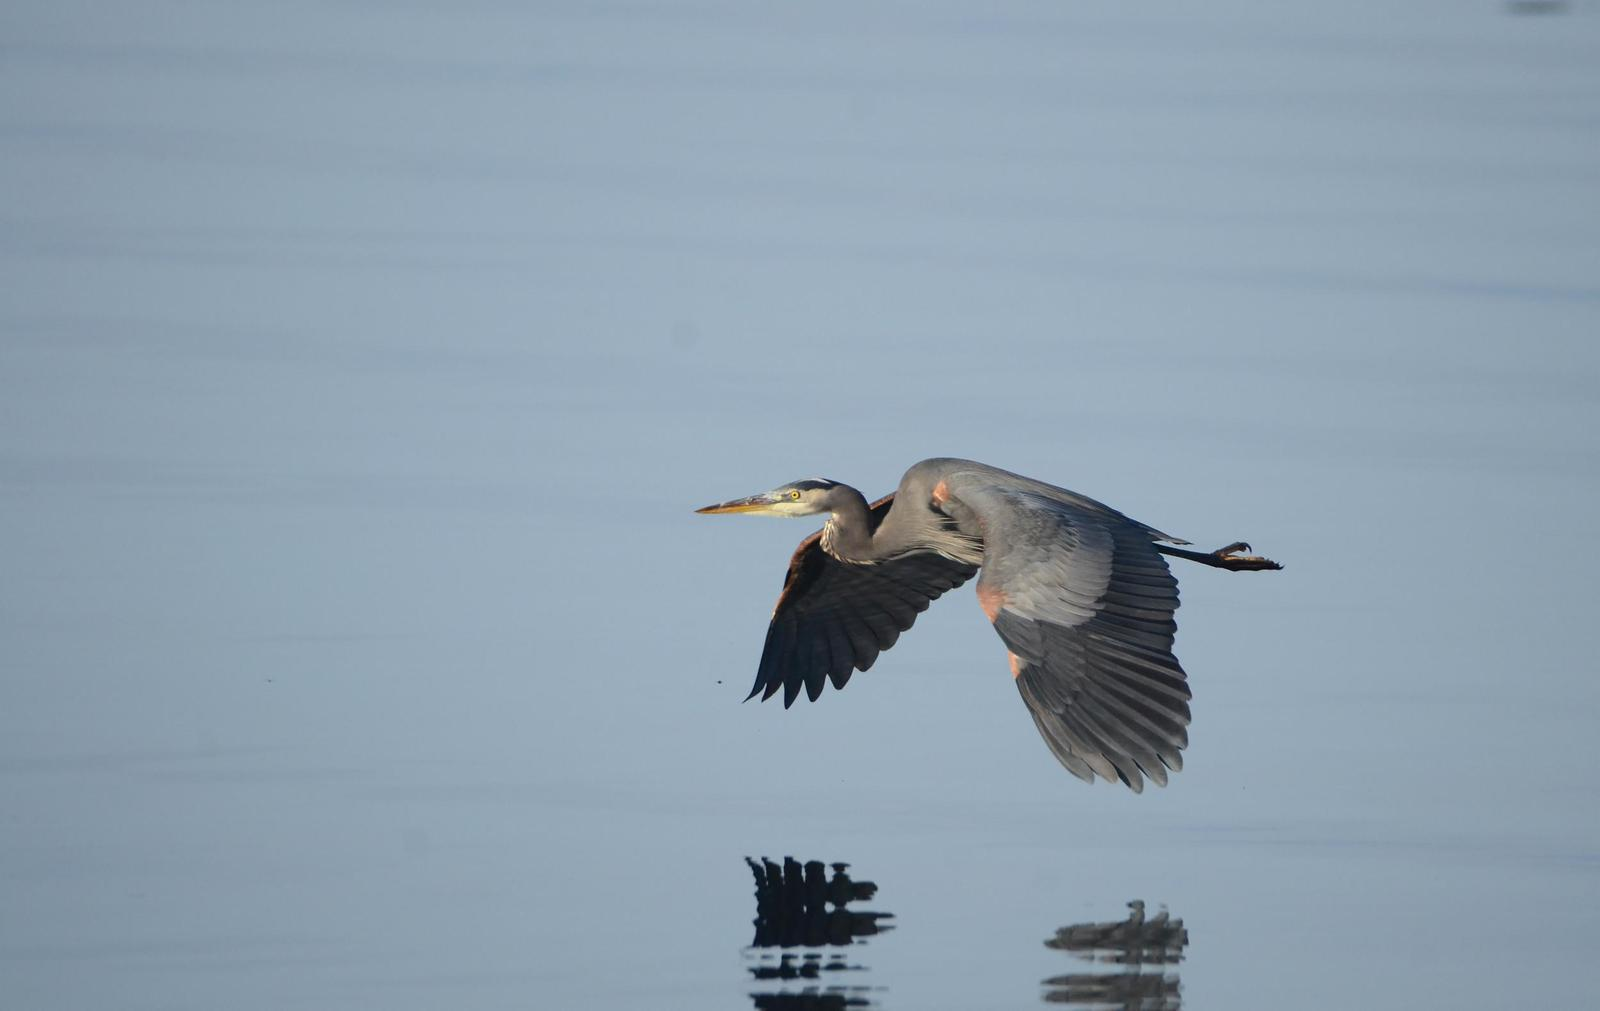 Great Blue Heron (Blue form) Photo by Steven Mlodinow